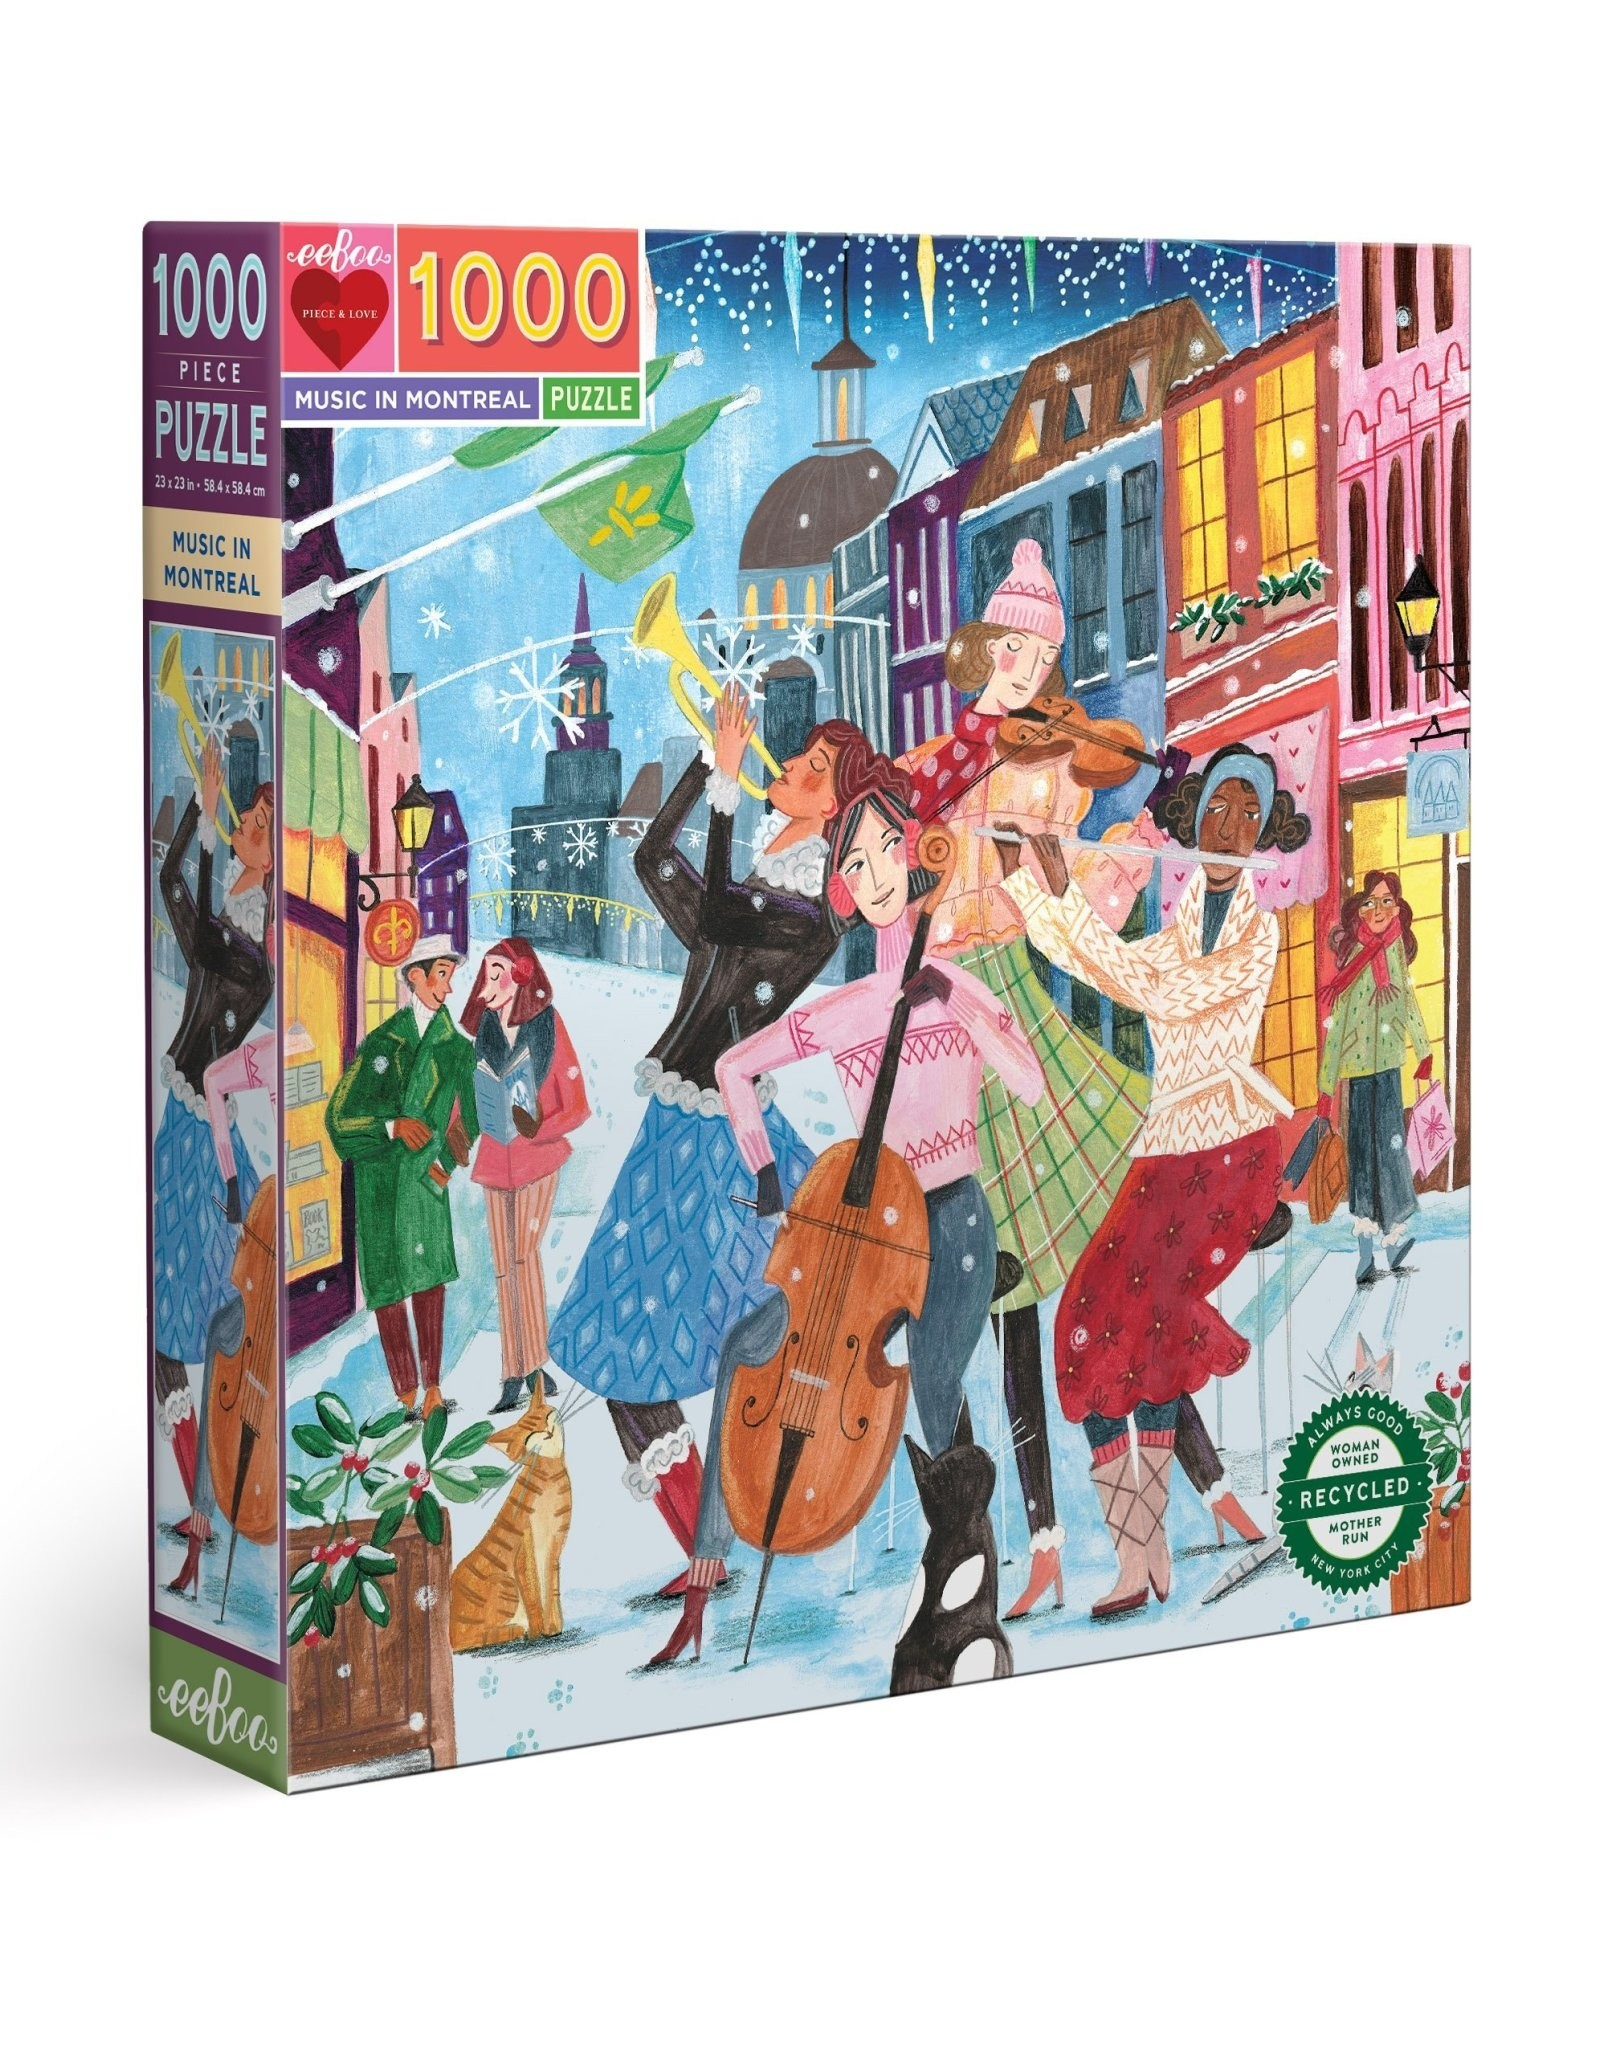 Music in Montreal 1000 Piece Puzzle